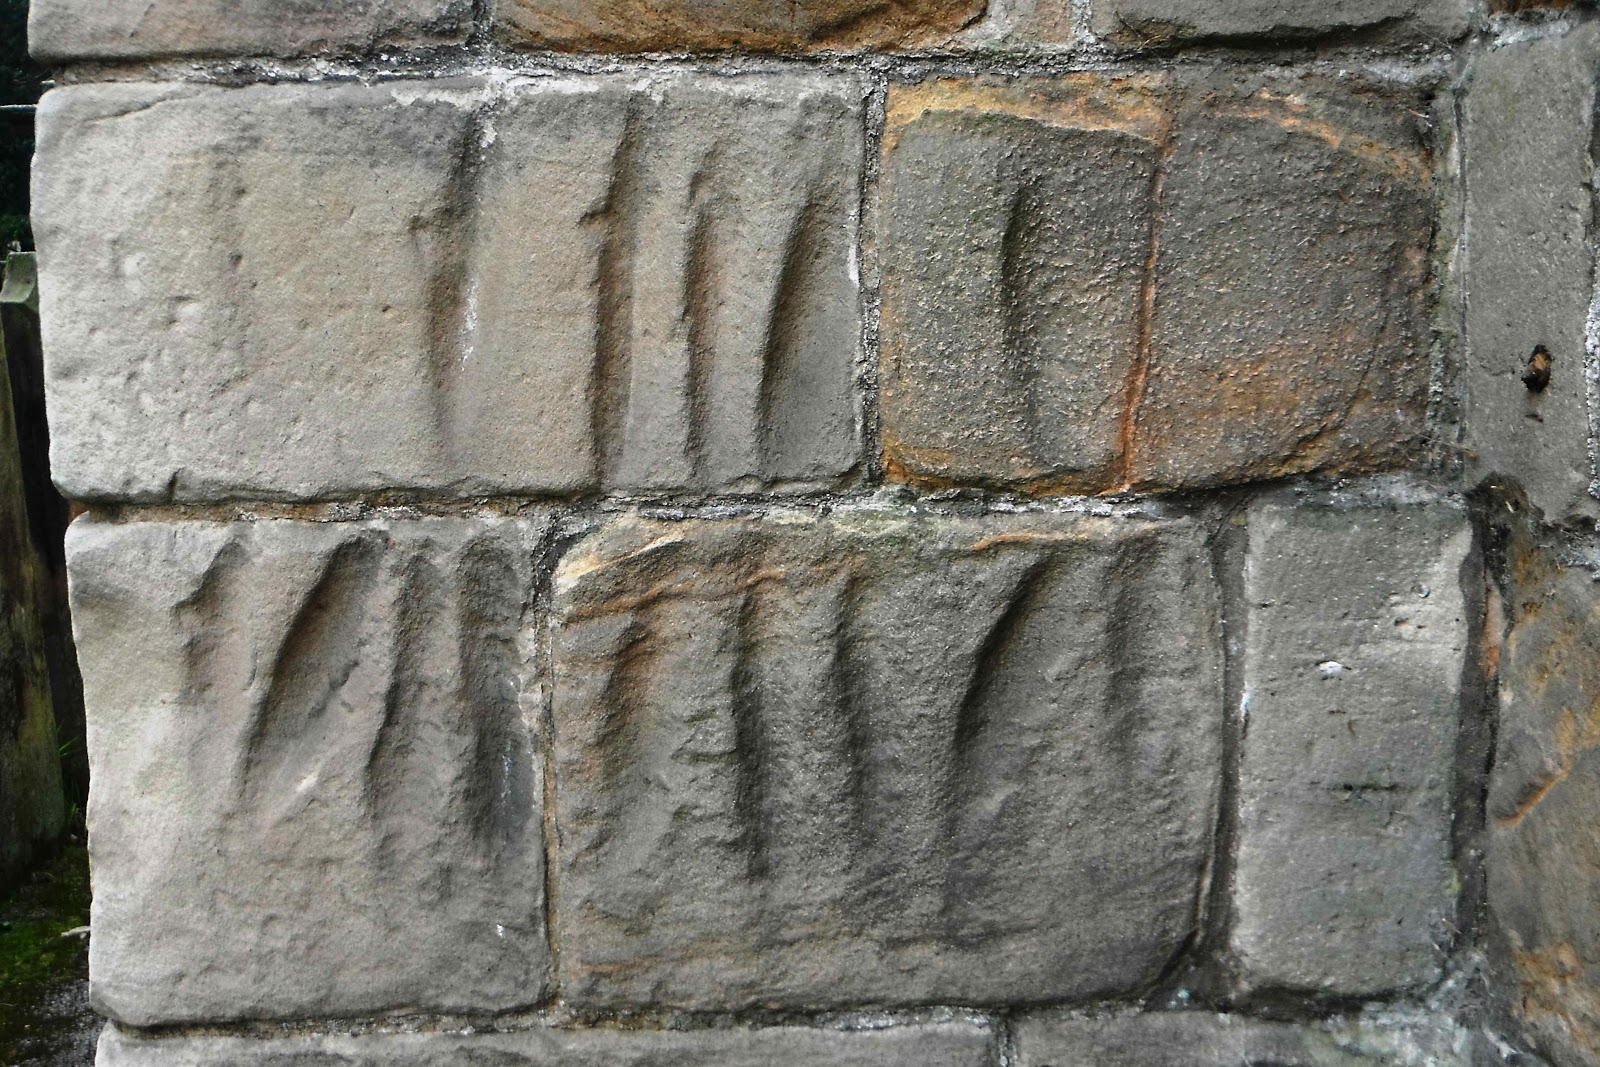 Checkley Church arrow-head markings